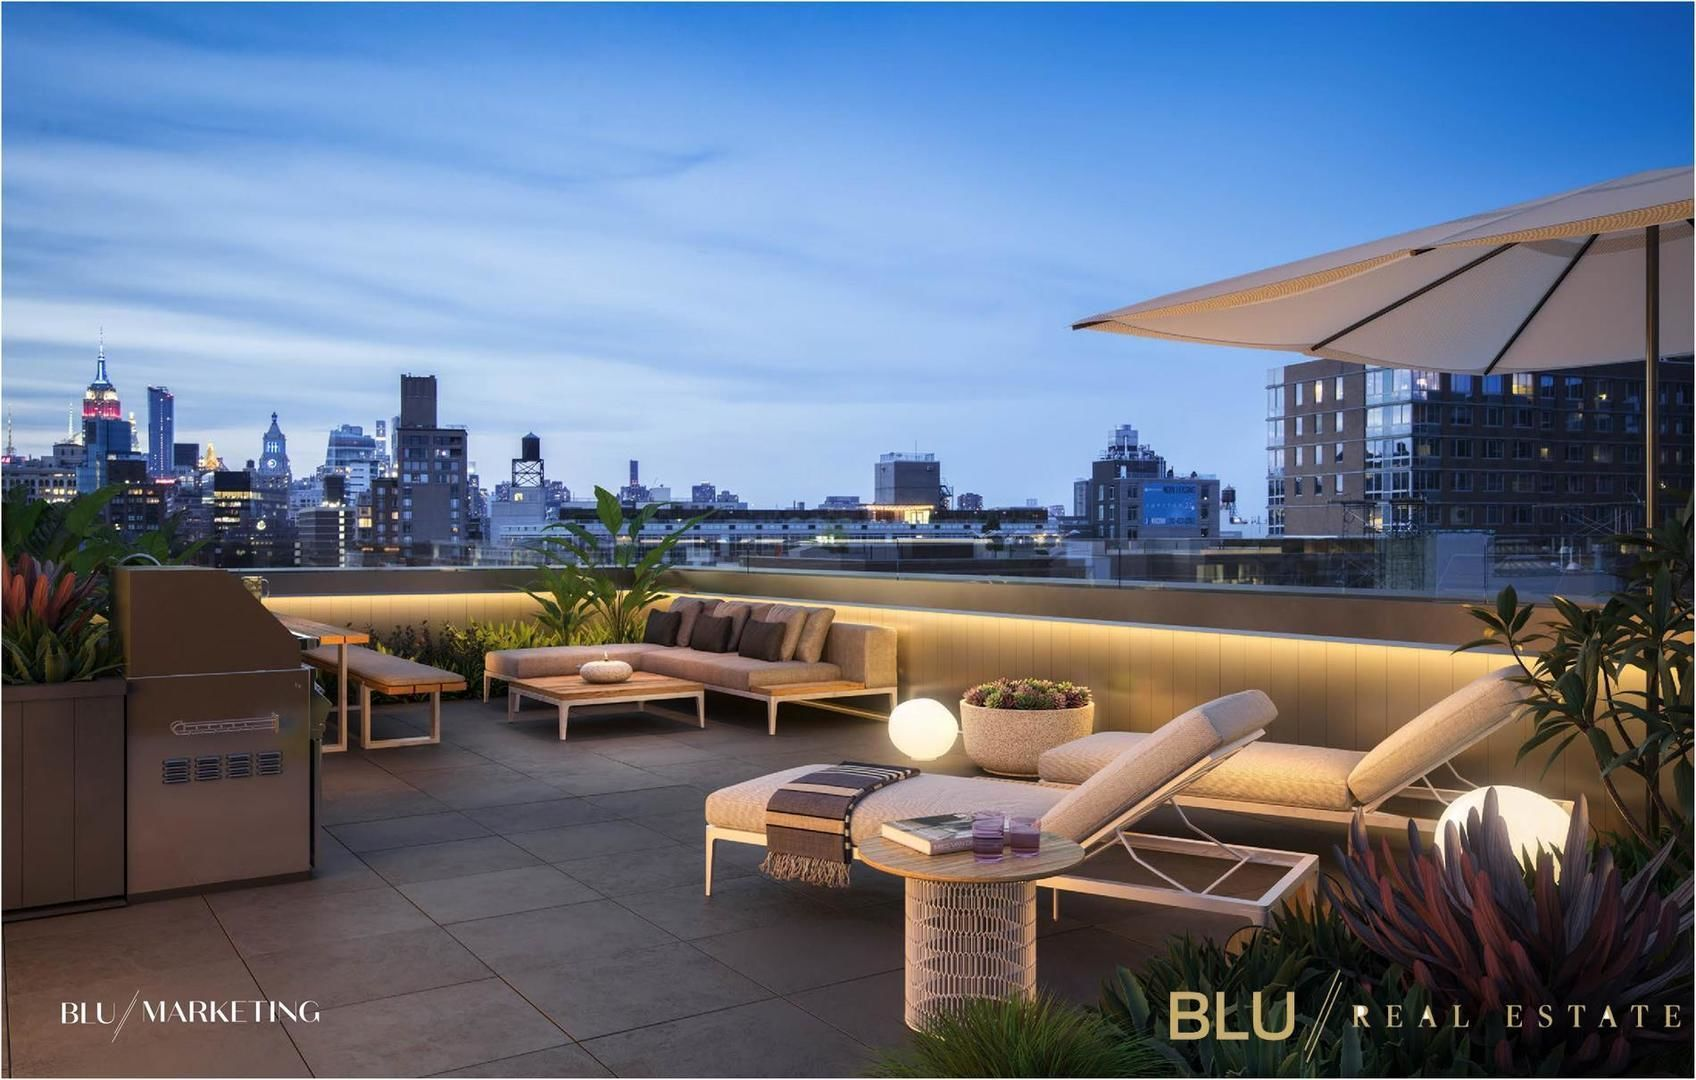 Apartment for sale at 260 Bowery, Apt 4